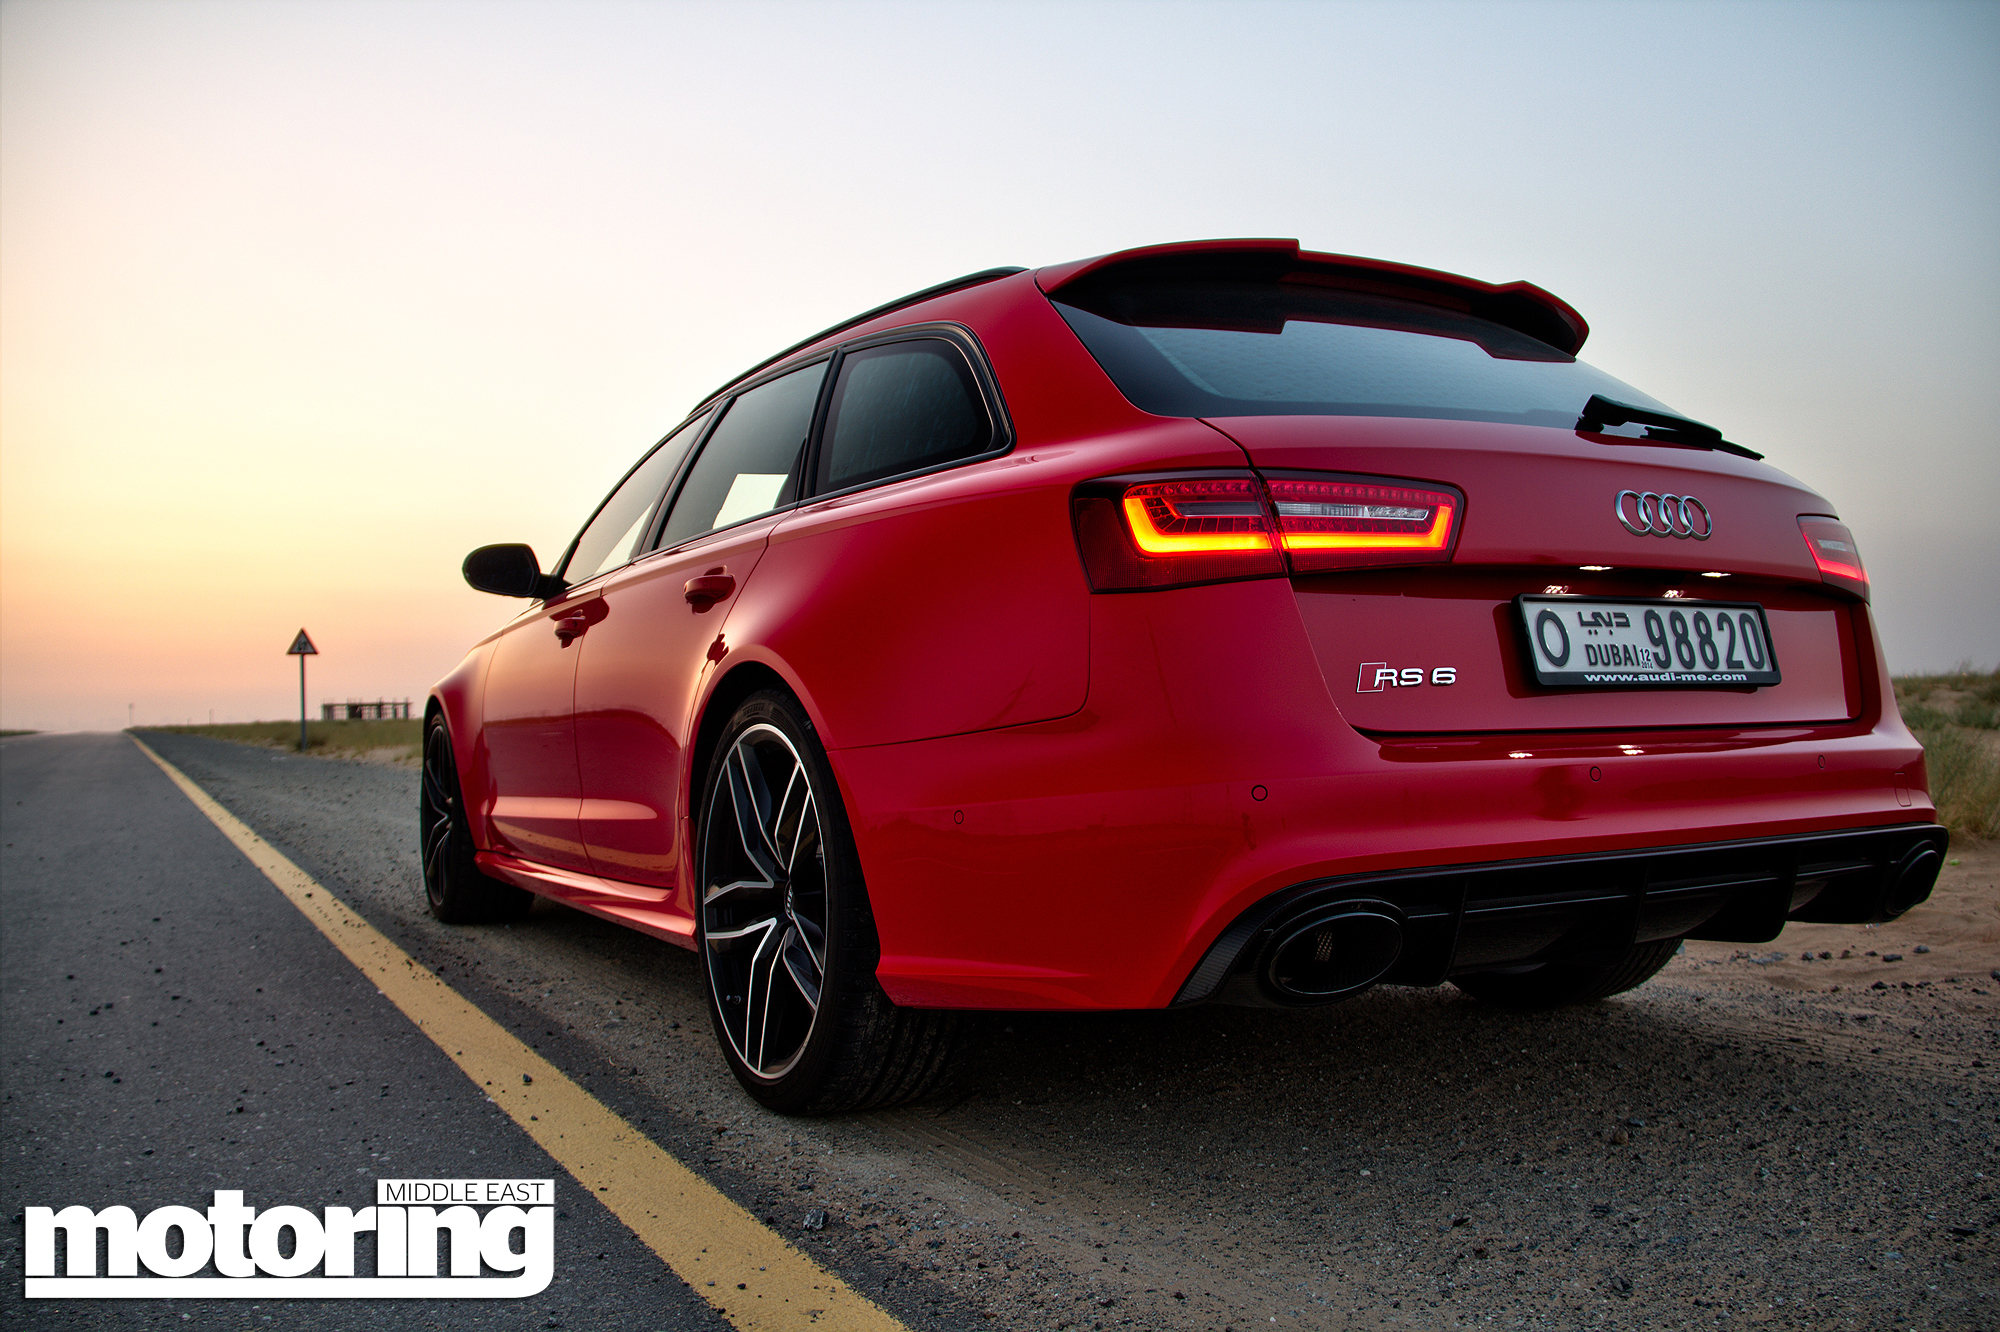 2014 audi rs6 avant the fastest family wagon in the world motoring middle east car news. Black Bedroom Furniture Sets. Home Design Ideas